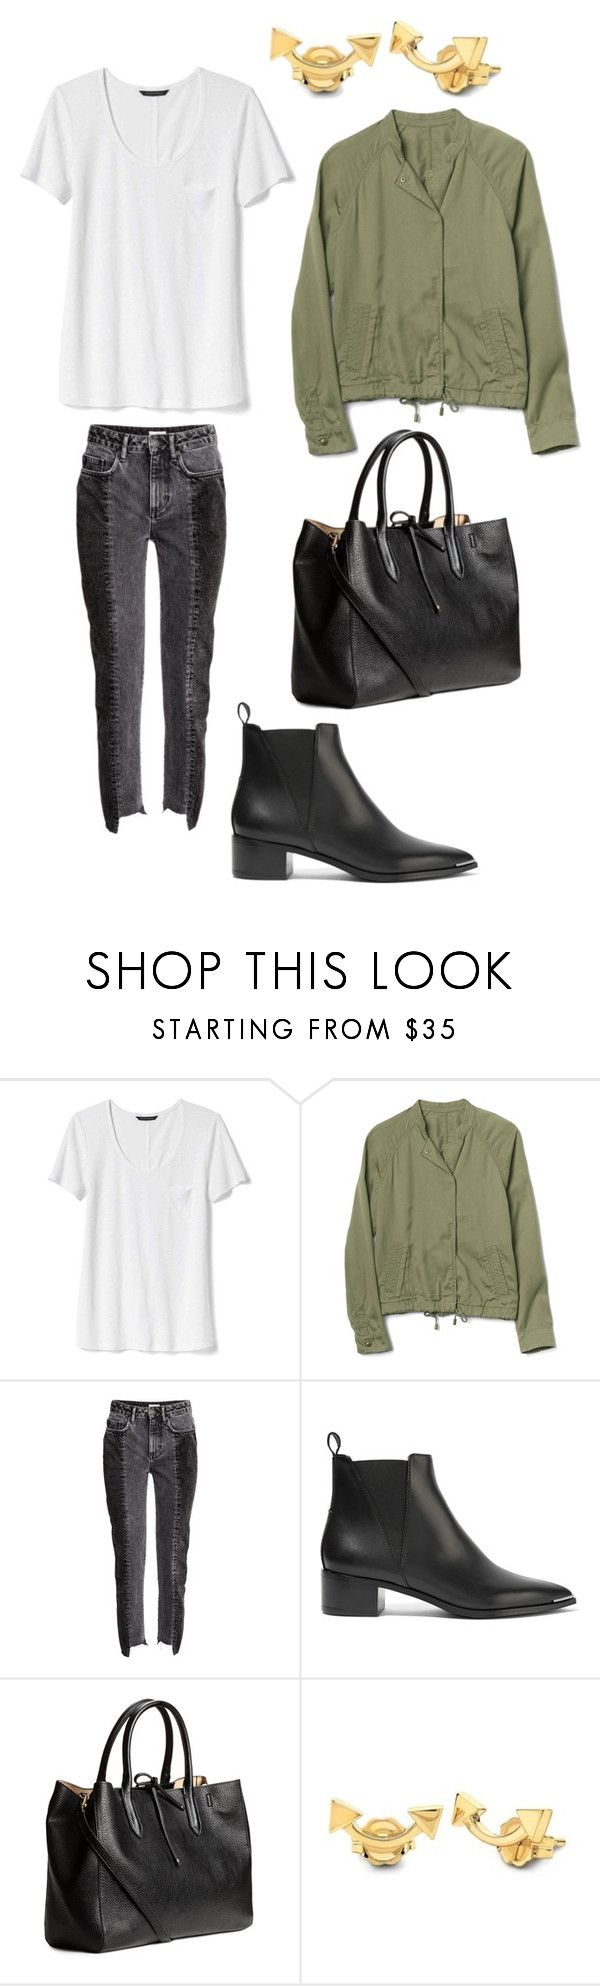 """""""210118"""" by blindressource ❤ liked on Polyvore featuring Banana Republic, Gap, H&M, Acne Studios, Missoma, HM, zara, parka and acne"""